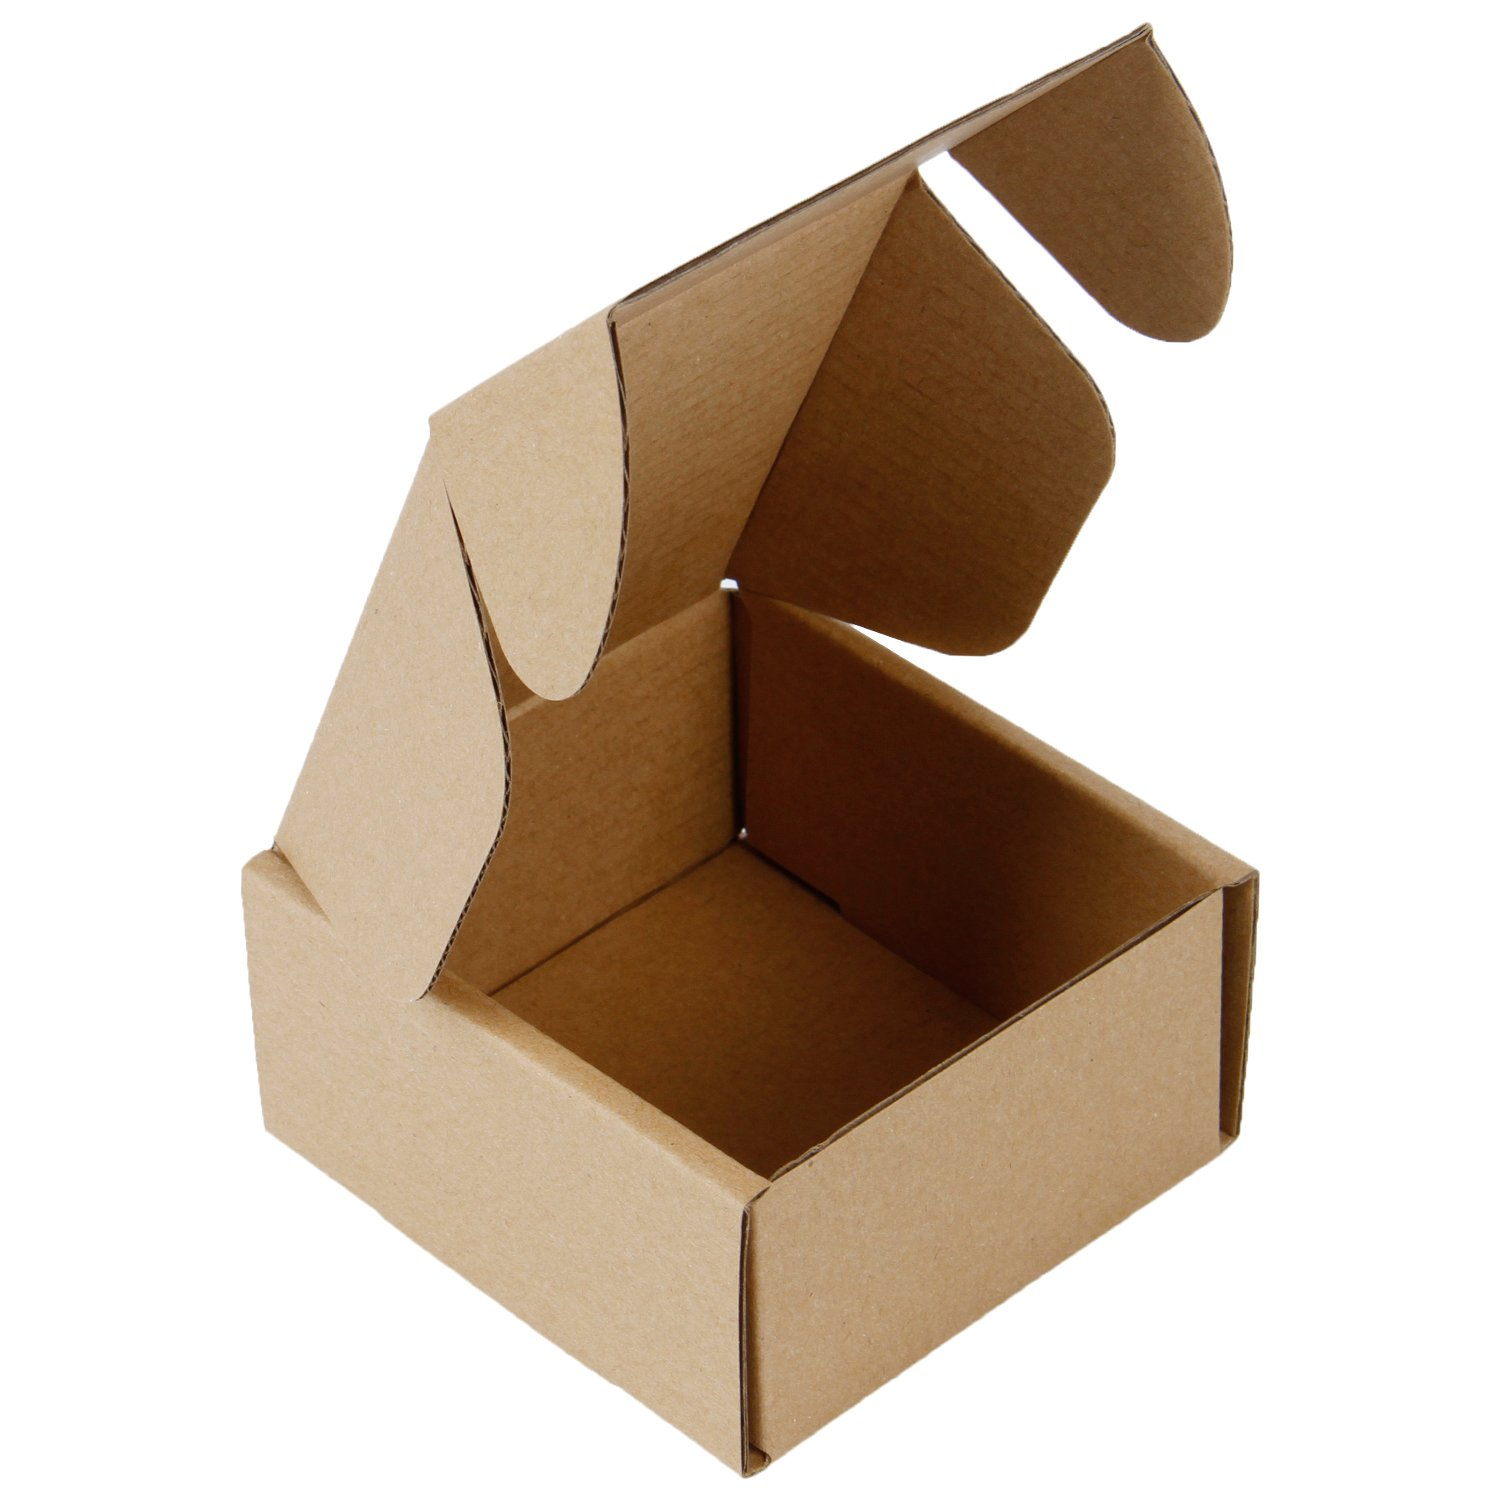 RUSPEPA Recycled Corrugated Box Mailers - Cardboard Box Perfect for Shipping Small - 4'' x 4'' x 2'' - 50 Pack - Kraft